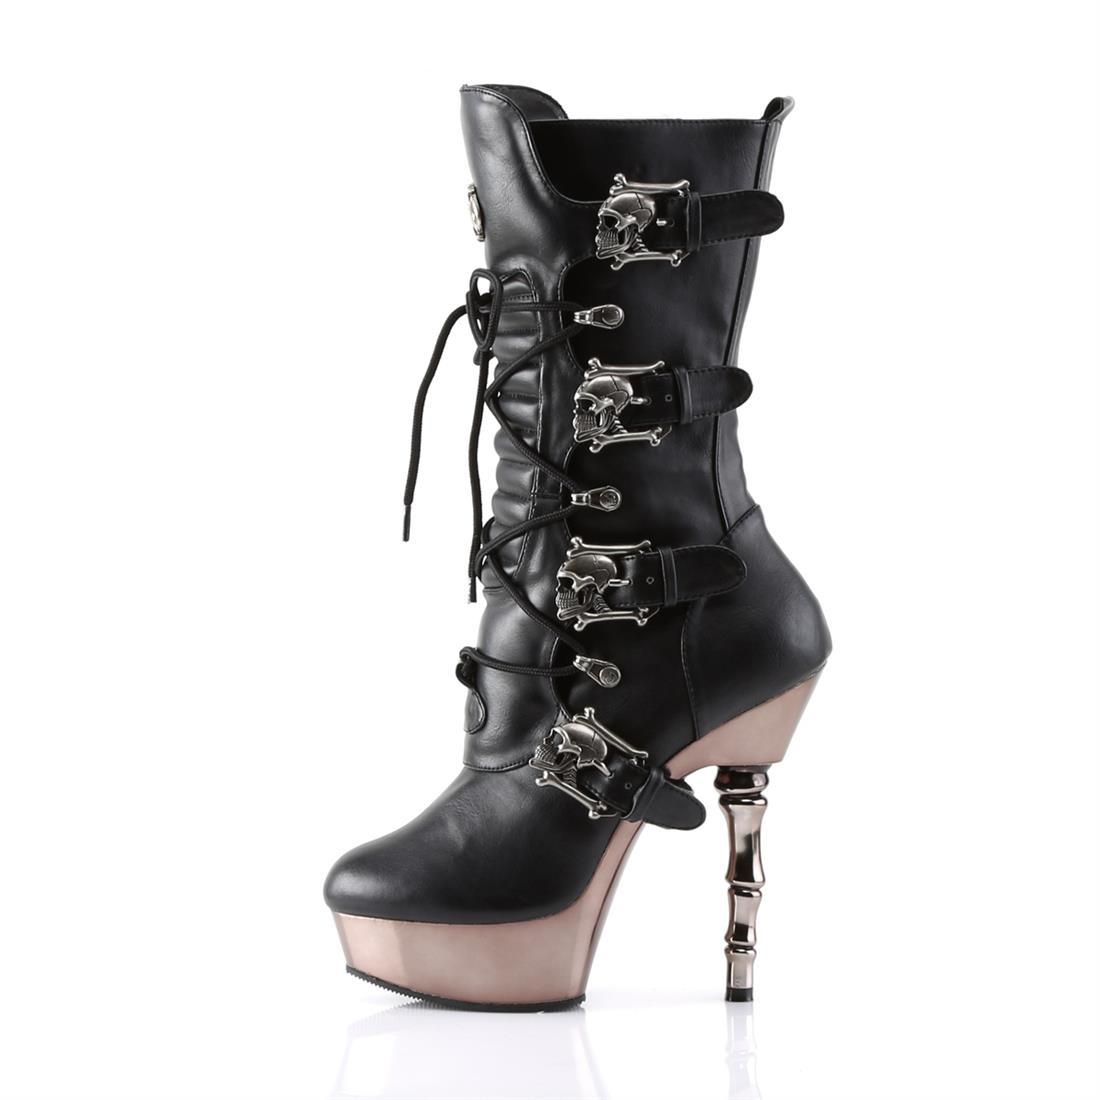 "Muerto-1026 Vegan Leather 5 1/2"" Finger Bone Heel Boot"